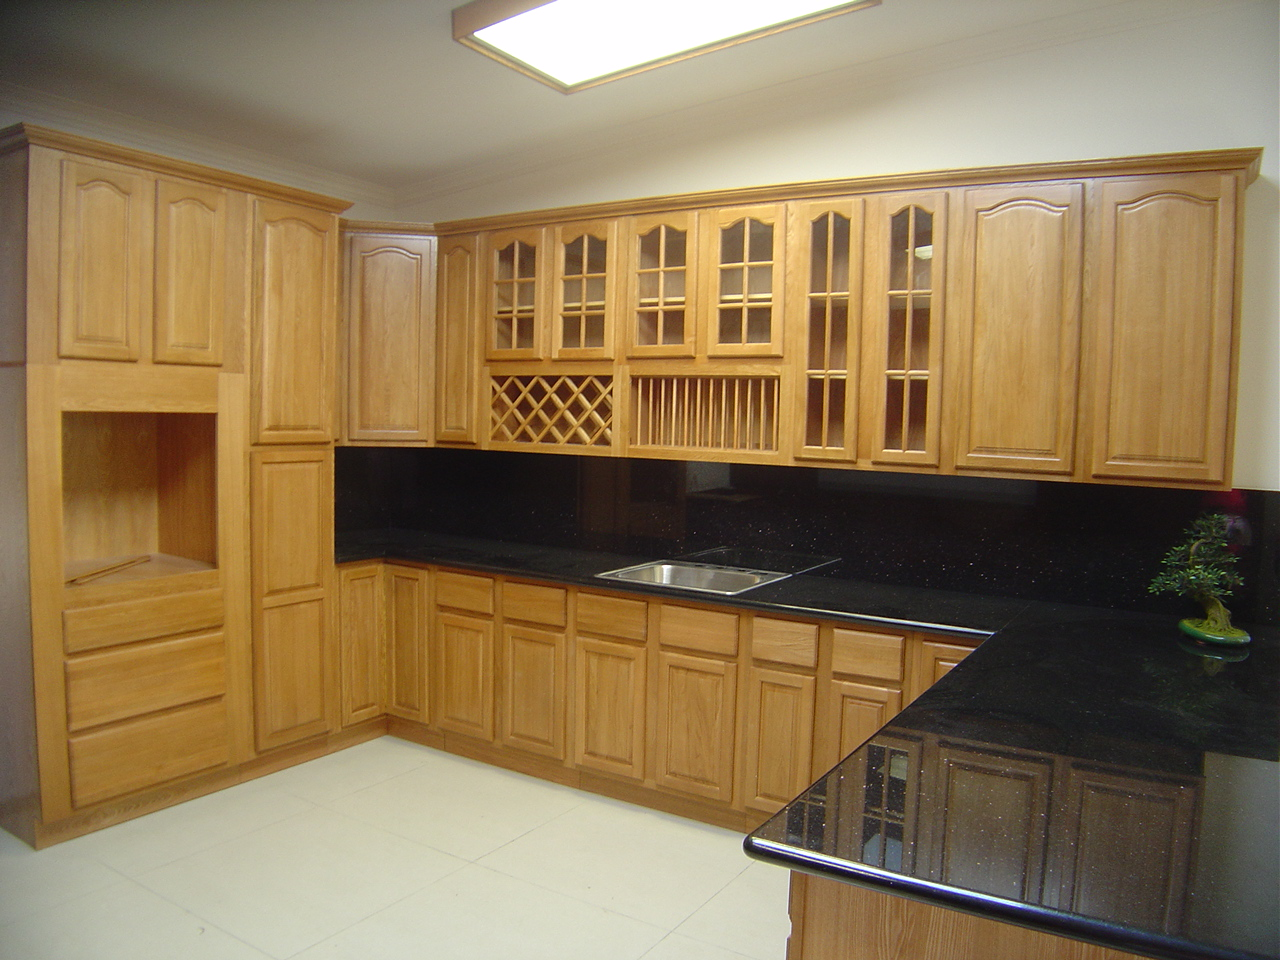 Kitchen cabinets with sliding doors photo - 1